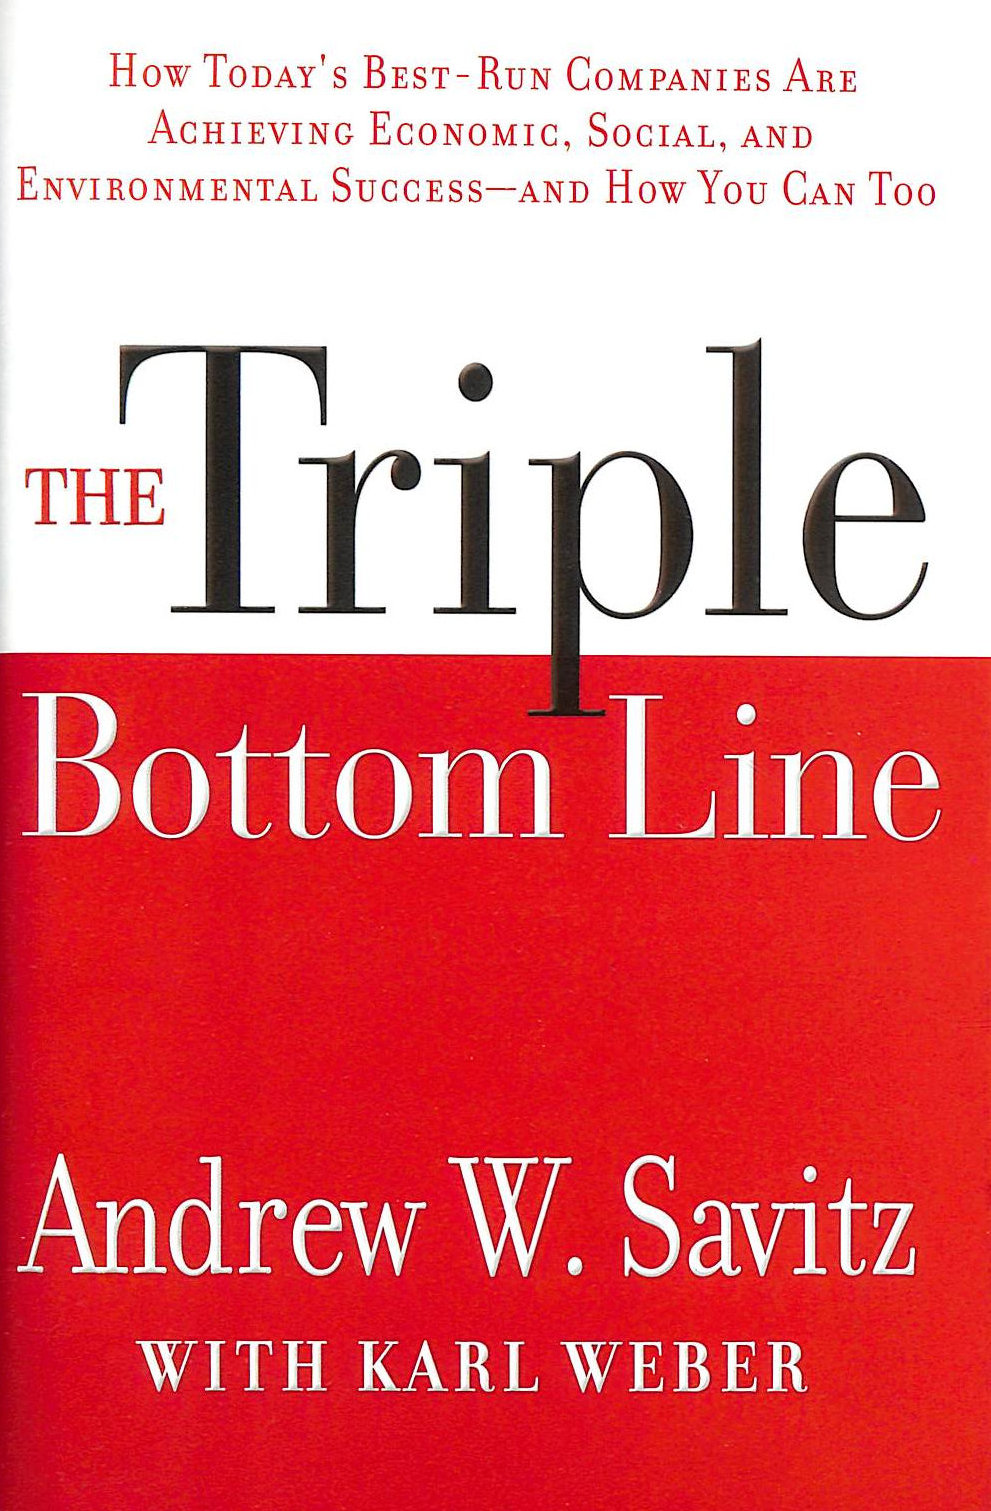 Image for The Triple Bottom Line: How Today's Best-Run Companies Are Achieving Economic, Social And Environmental Success - And How You Can Too